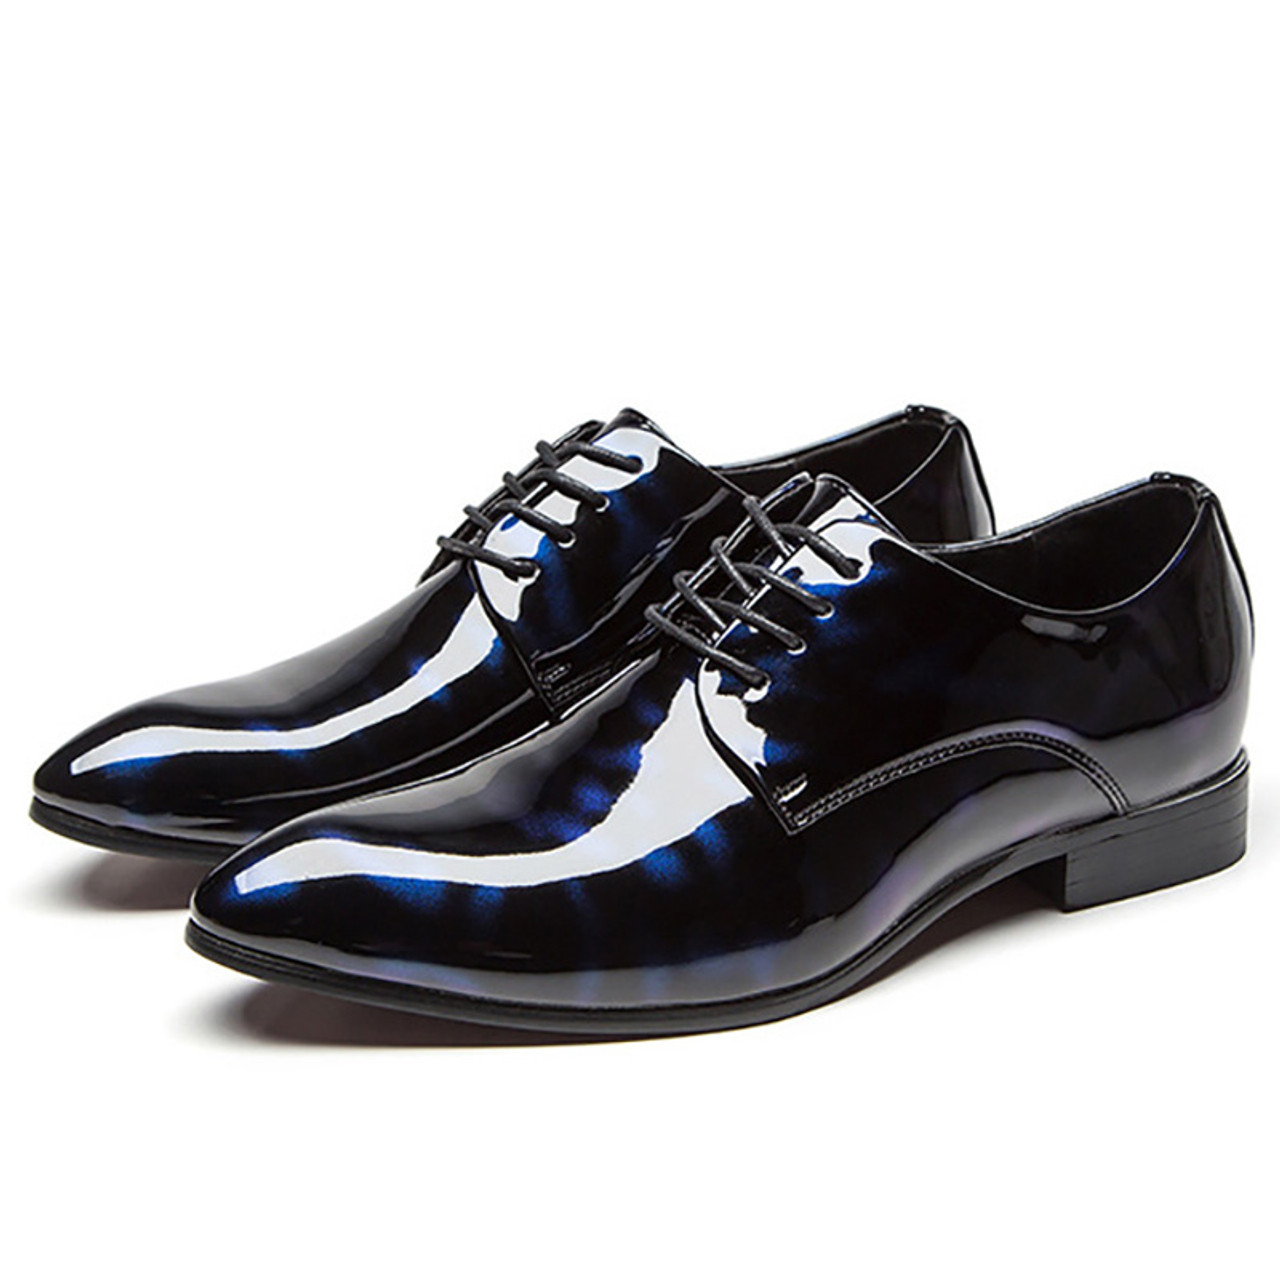 d559058b8f0fc5 ... COSIDRAM Men Formal Shoes Pointed Toe Business Wedding Patent Leather Oxford  Shoes For Men Dress Shoes ...